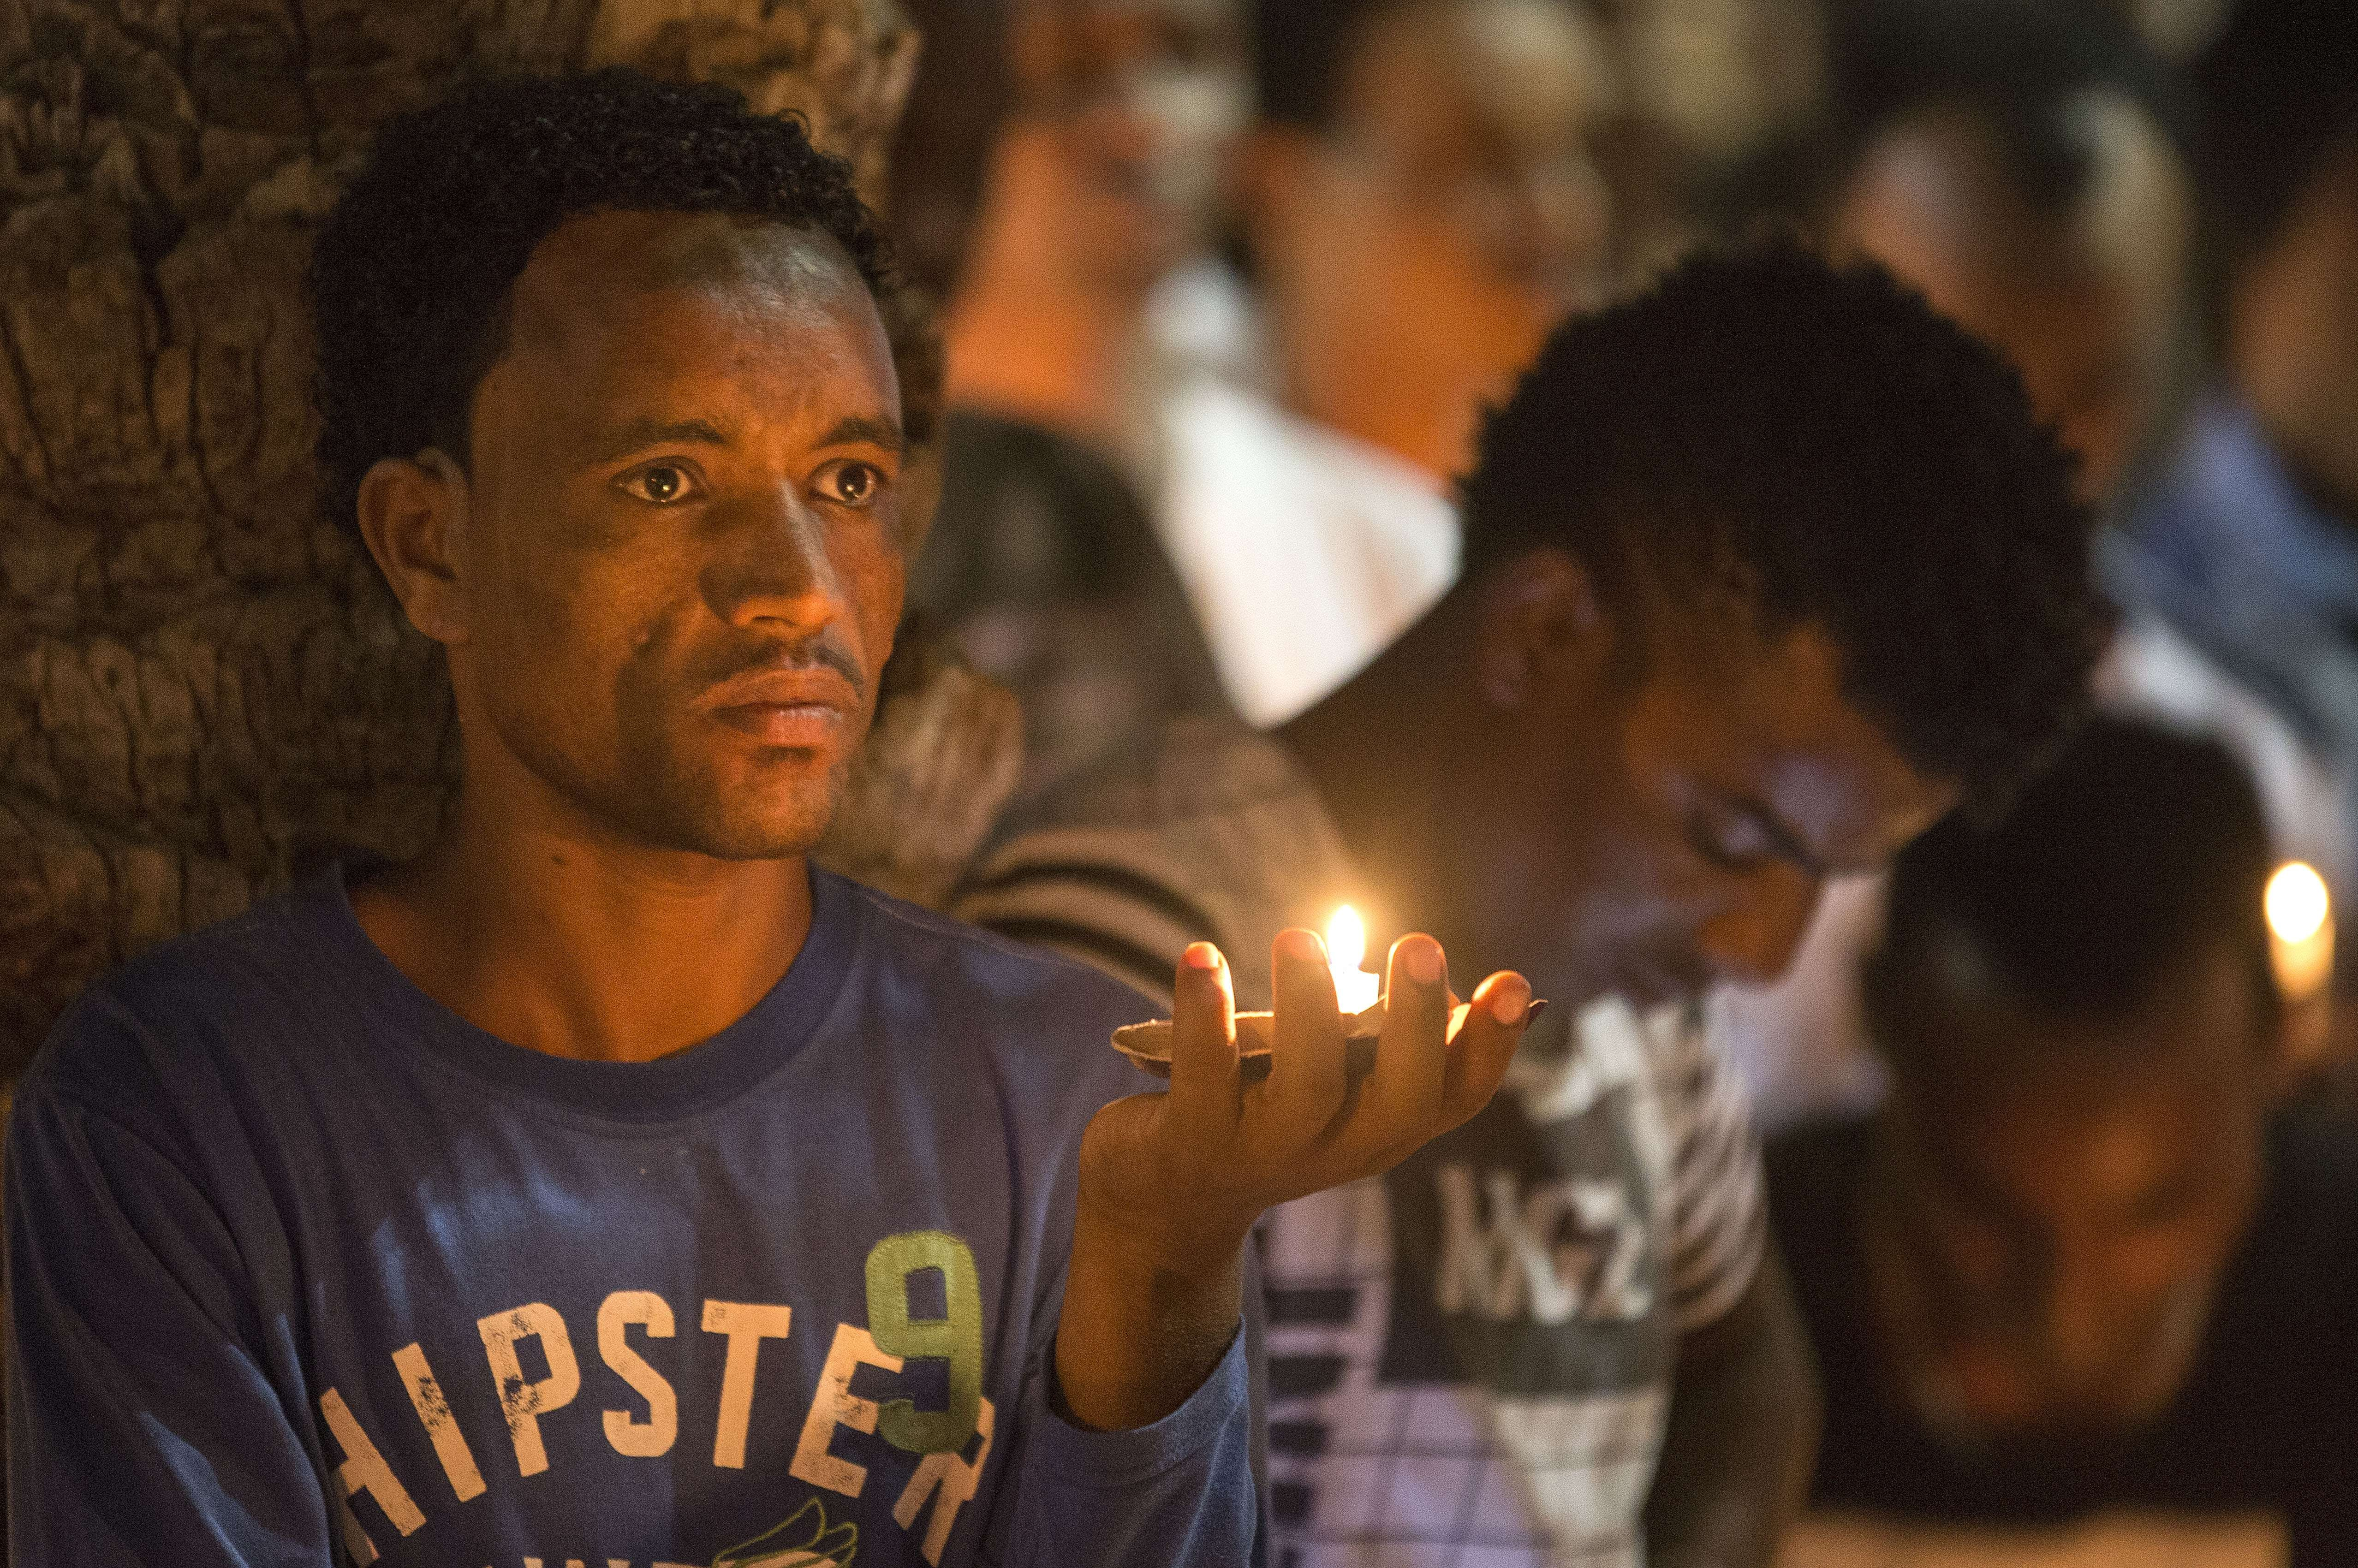 A member of the Eritrean community in Israel holds a candle on October 21, 2015 in the Israeli city of Tel Aviv during a memorial ceremony for Eritrean asylum seeker Haptom Zerhum.